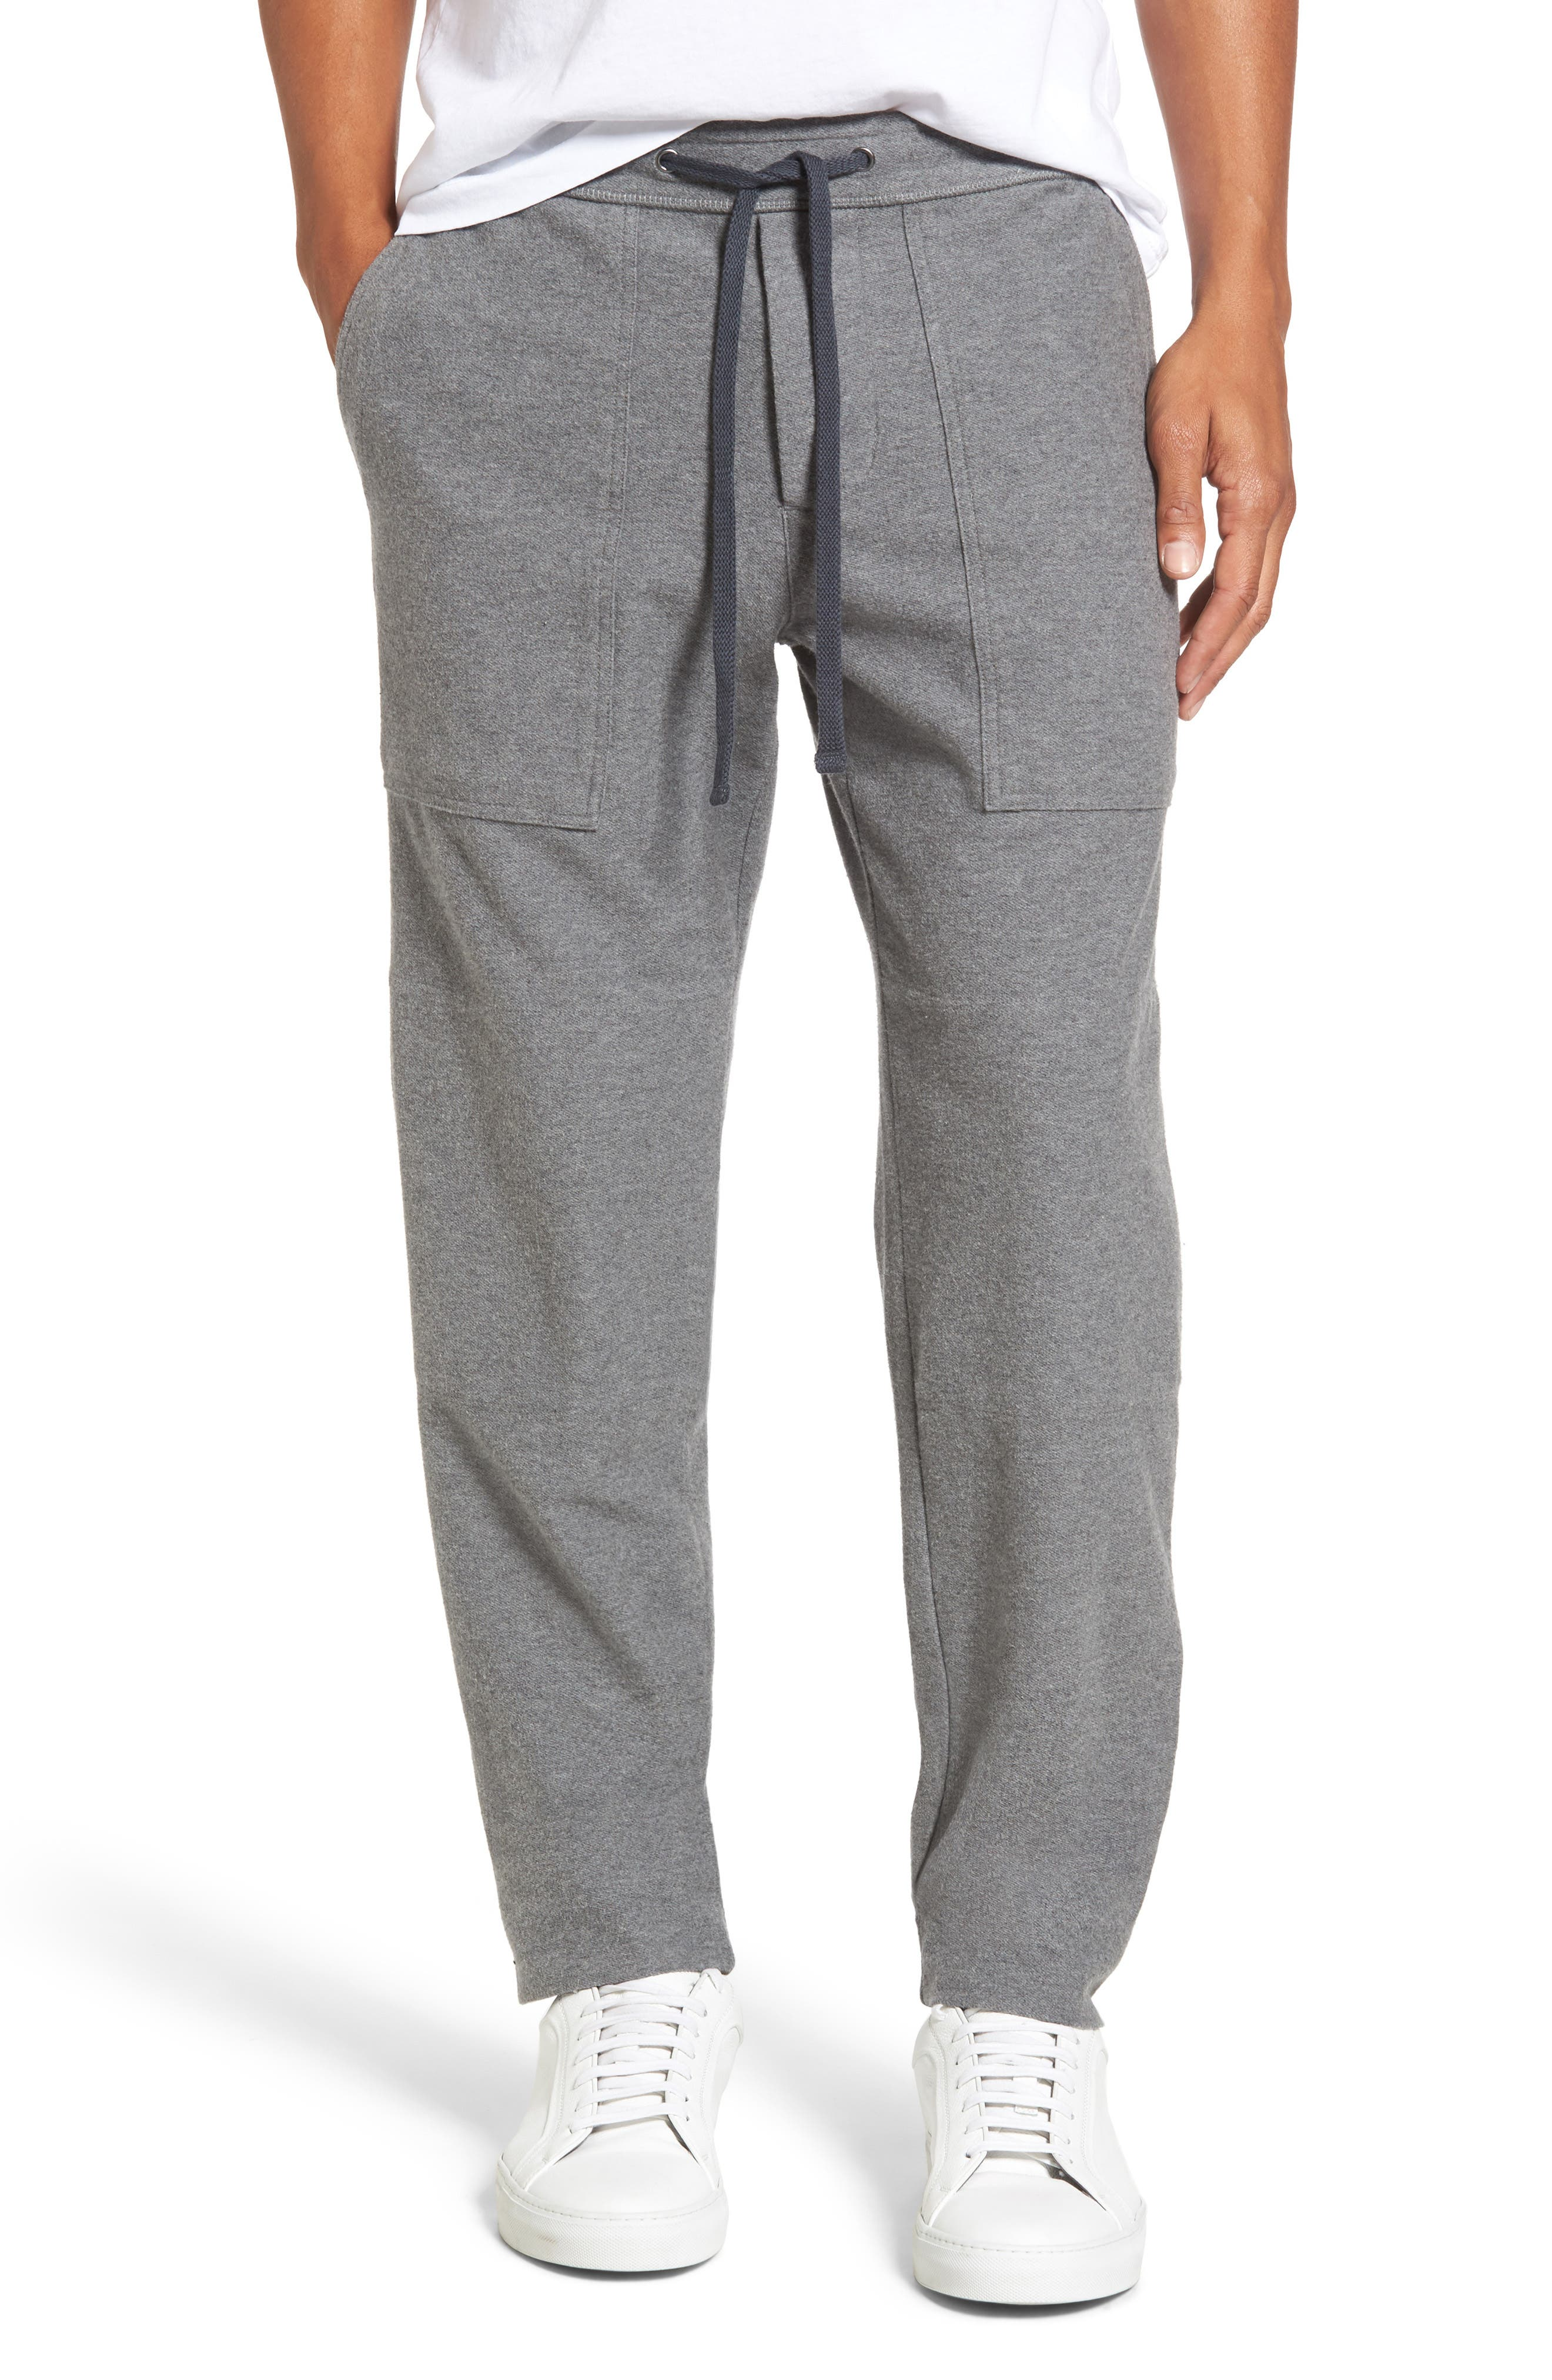 Alternate Image 1 Selected - James Perse Heathered Knit Lounge Pants